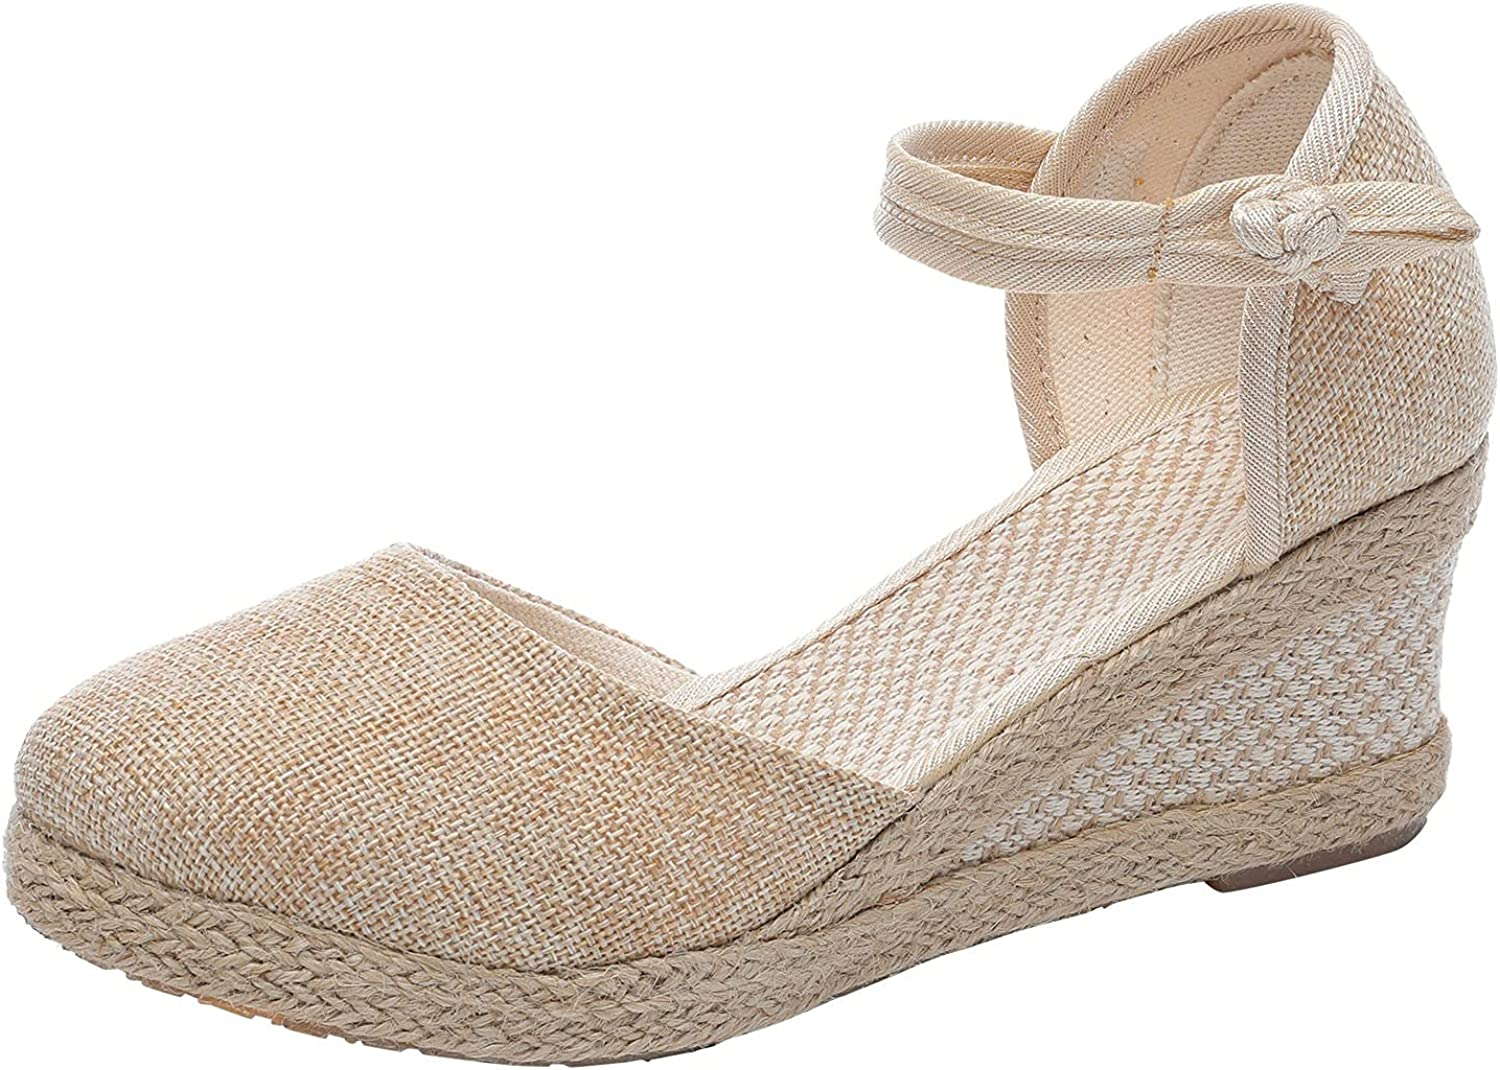 FAMOORE Fashion Women's Casual Shoes Breathable Slip-on Outdoor Leisure Wedges Sandals